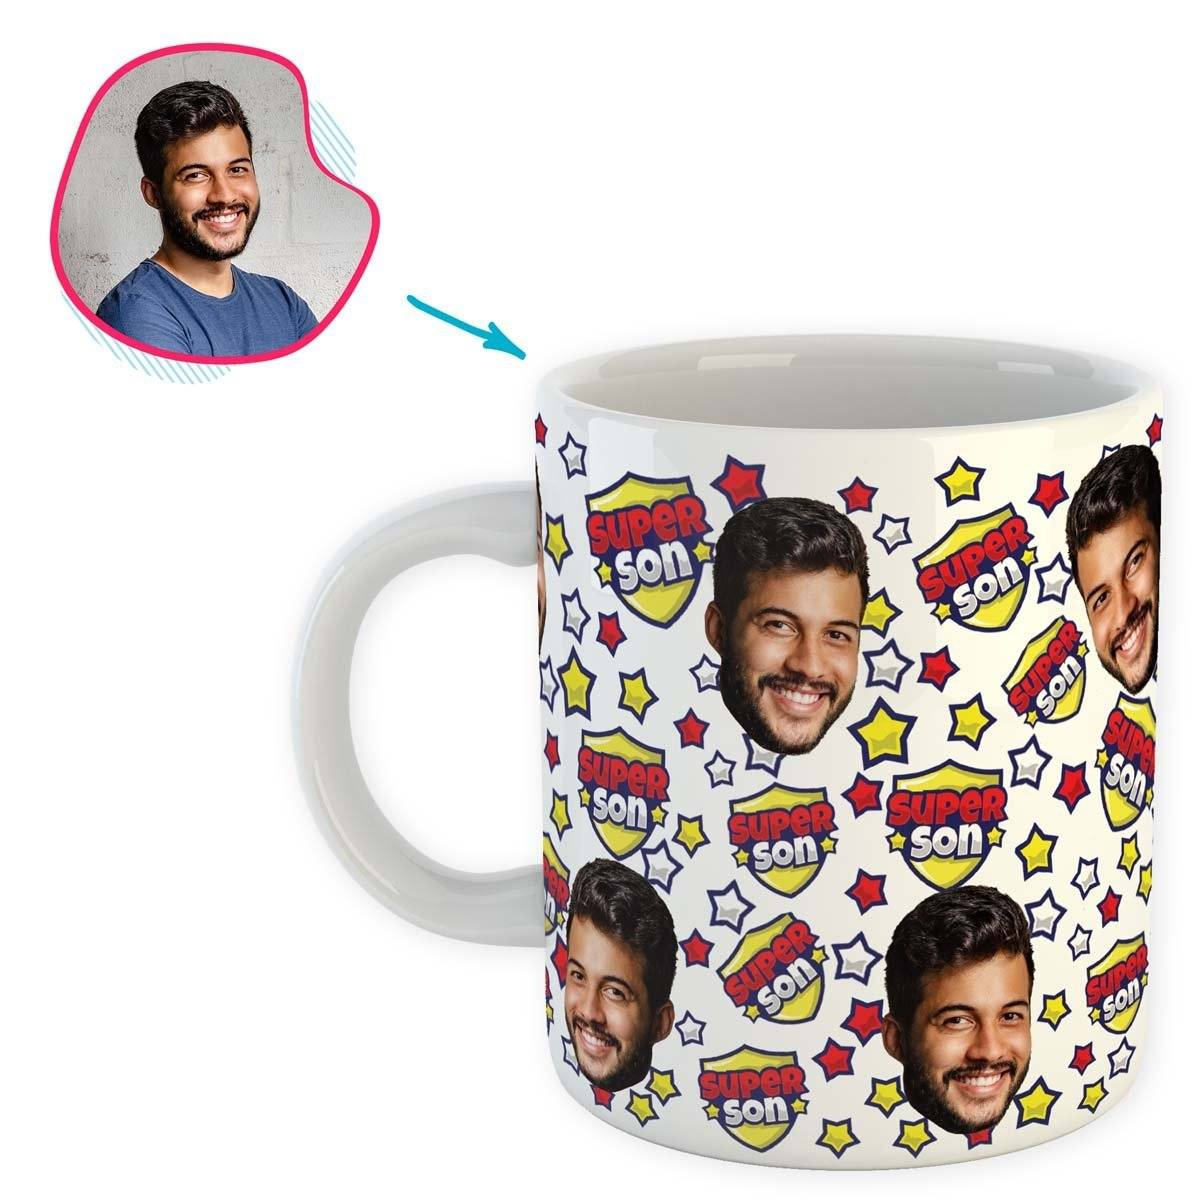 white Super Son mug personalized with photo of face printed on it